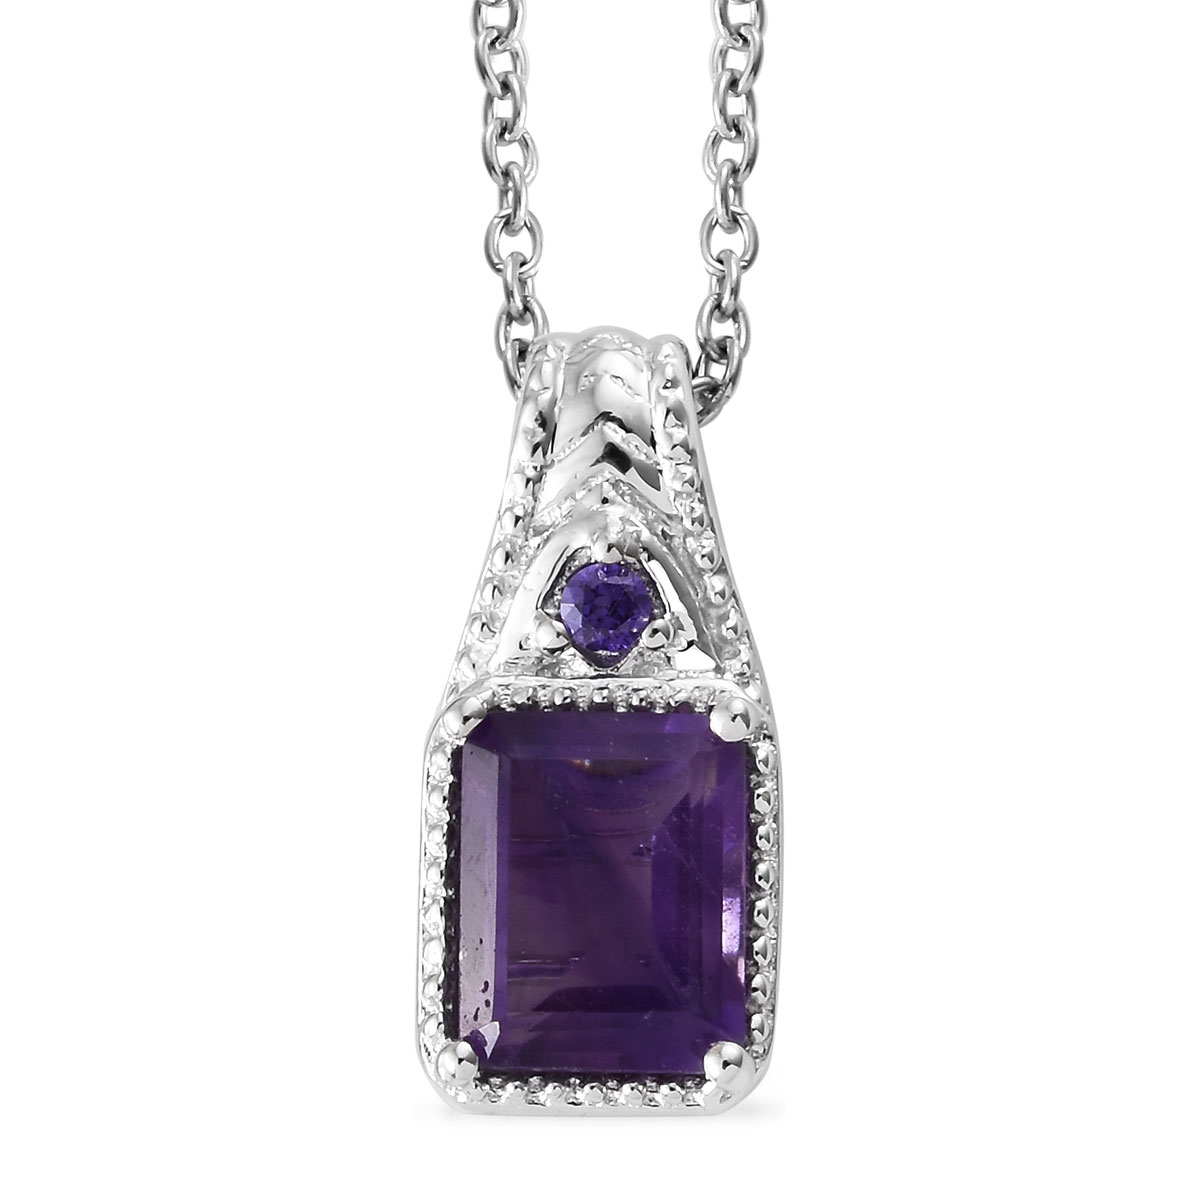 67d1698240dac KARIS - Amethyst, Purple CZ Pendant Necklace (20 in) in Platinum Bond Brass  and Stainless Steel 2.35 ctw